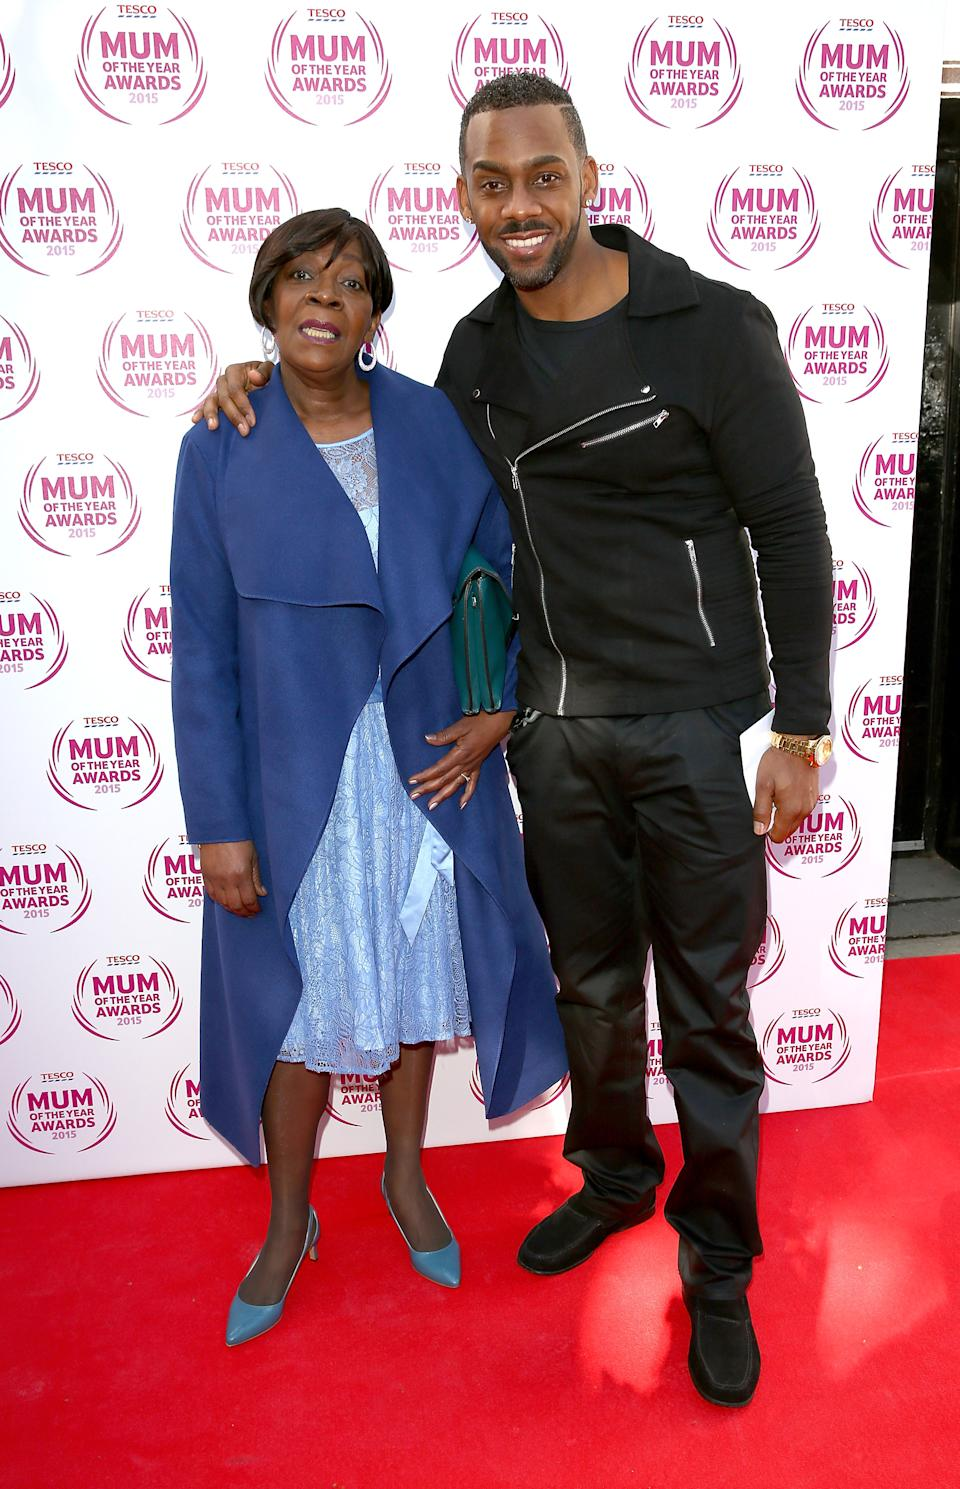 LONDON, ENGLAND - MARCH 01:  Richard Blackwood (R) and his mother attend the Tesco Mum of the Year Awards at The Savoy Hotel on March 1, 2015 in London, England.  (Photo by Tim Whitby/Getty Images)